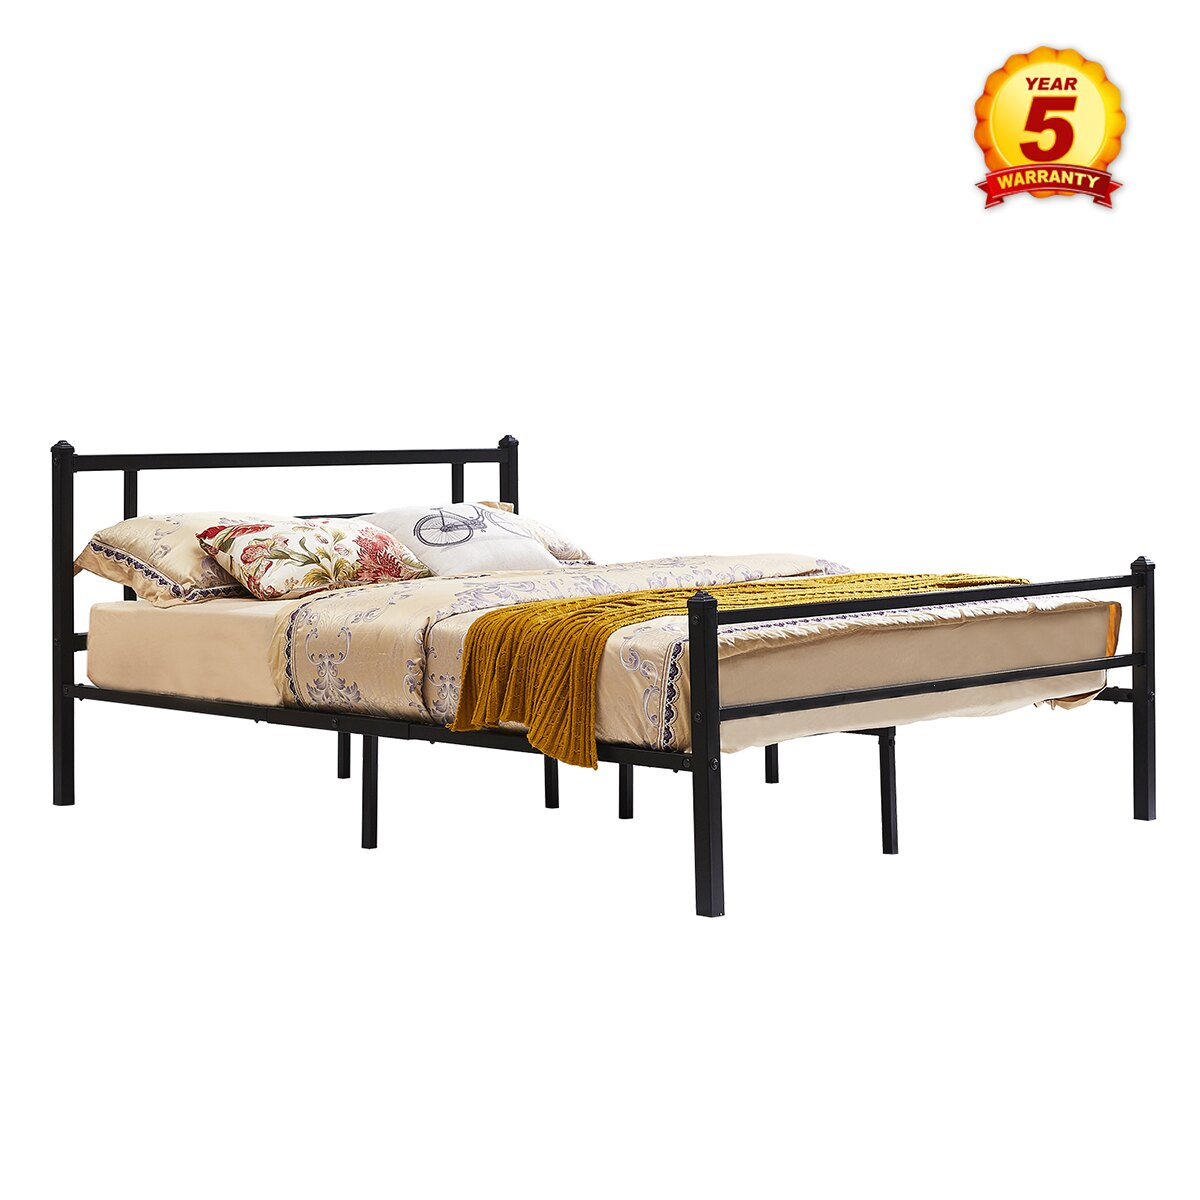 mcombo: Mcombo Metal Bed Frame with Headboard and Footboard,XL Twin ...